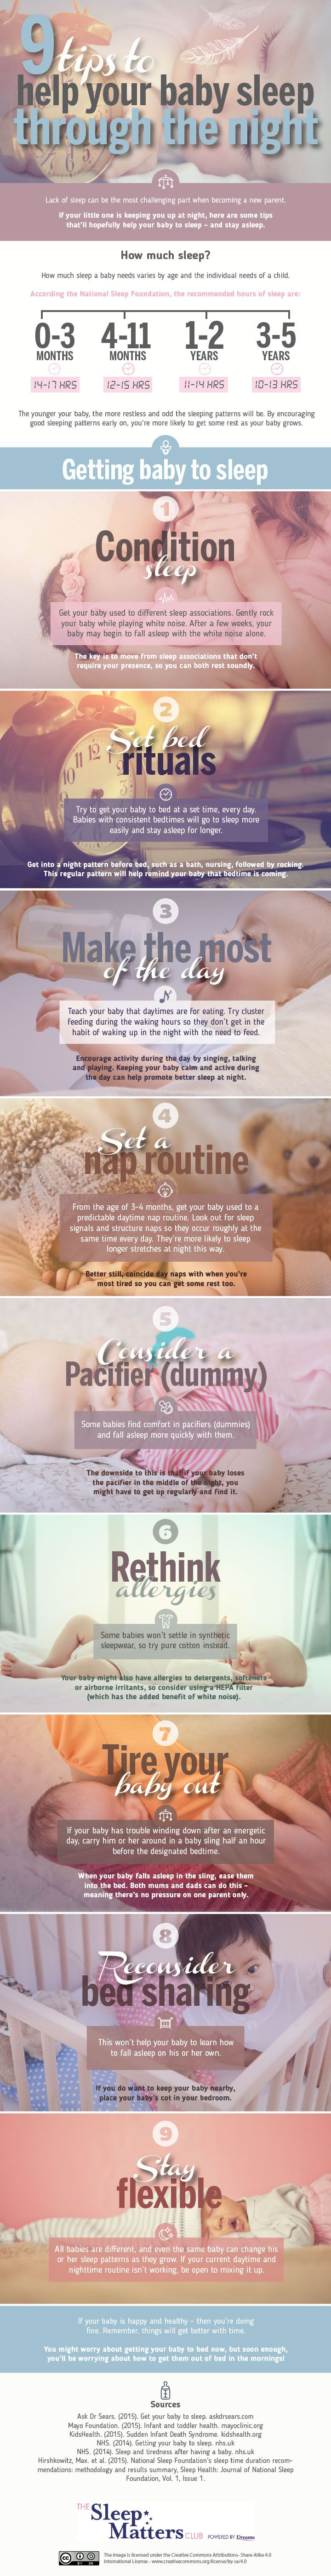 9 Tips To Help Your Baby Sleep Through The Night #Infographic